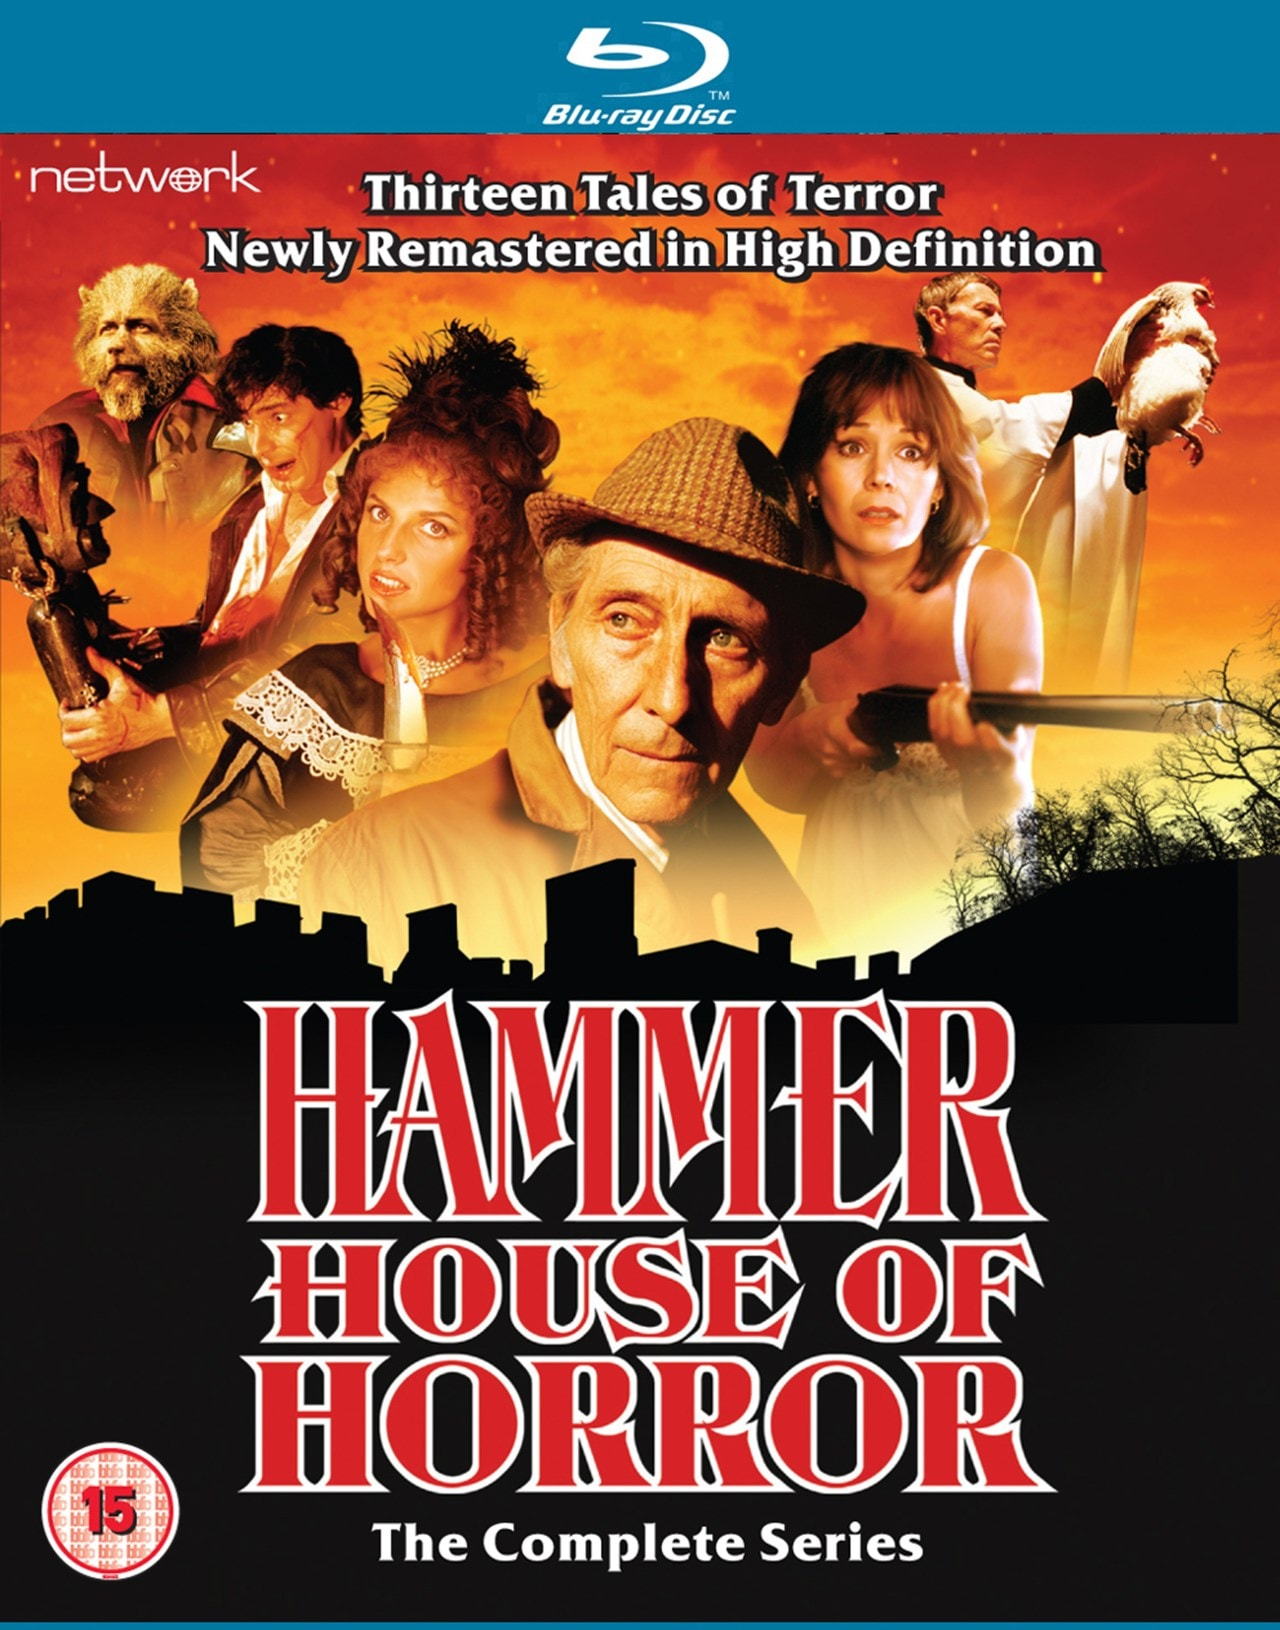 Hammer House Of Horror The Complete Series Blu Ray Box Set Free Shipping Over 20 Hmv Store